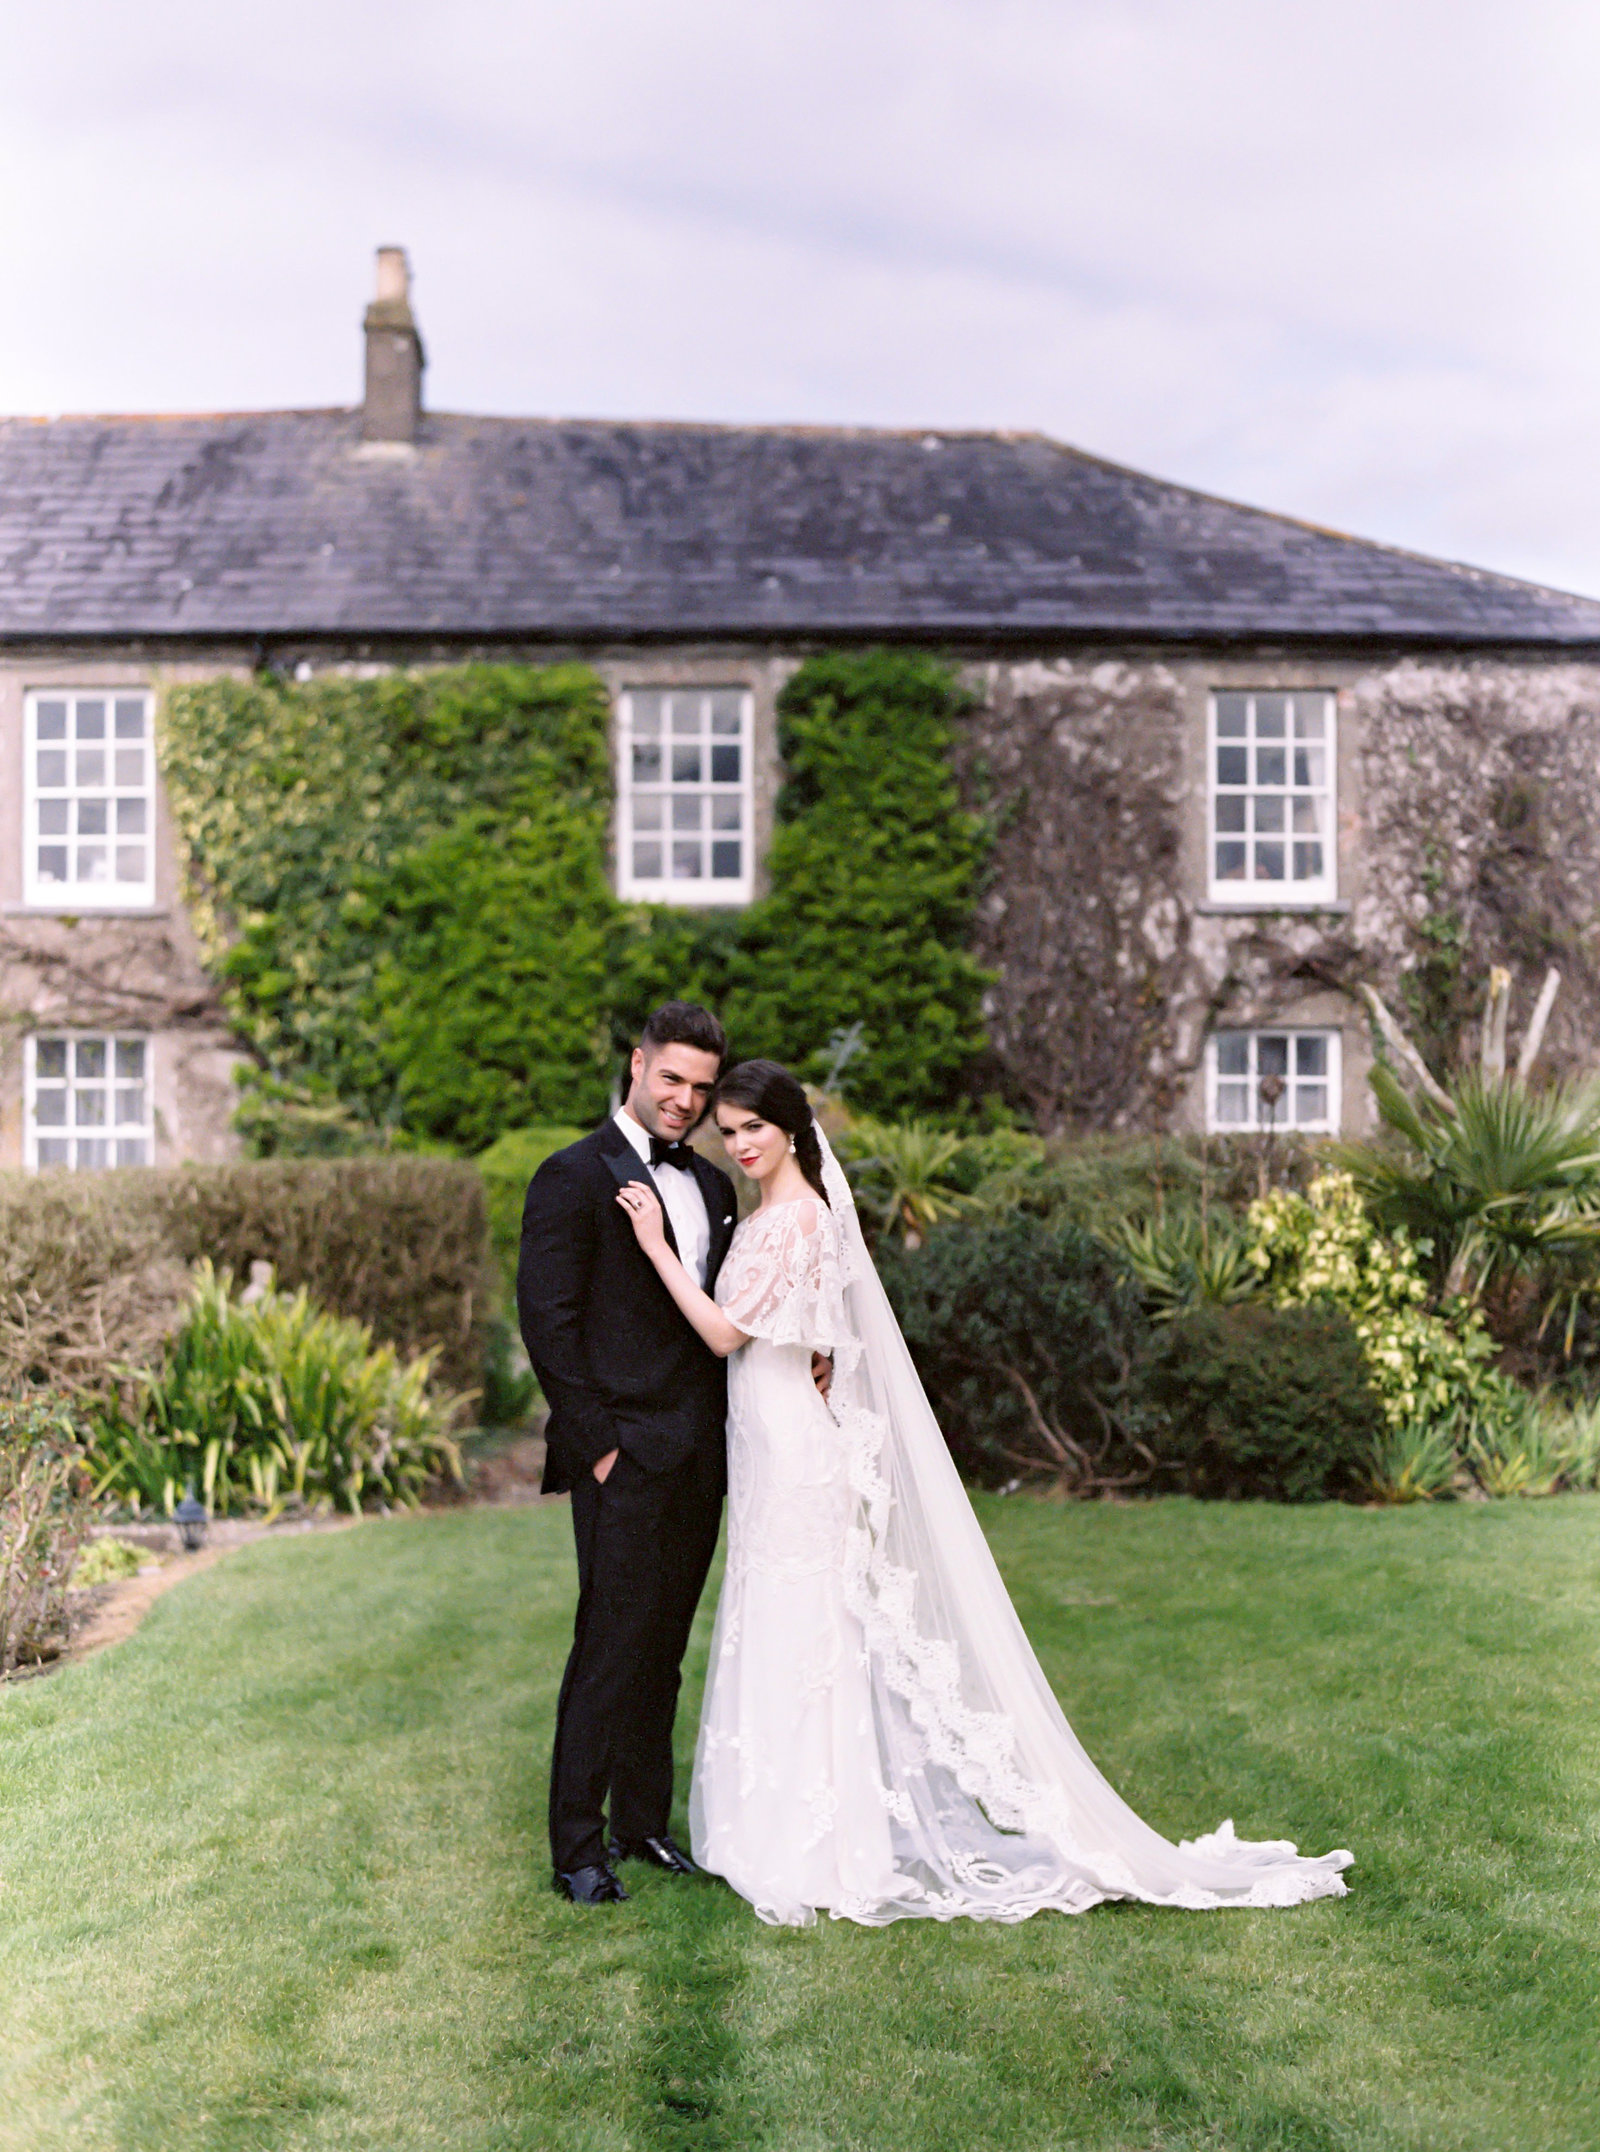 amelia_johnson_photography_for_atrendy_wedding_ireland00292